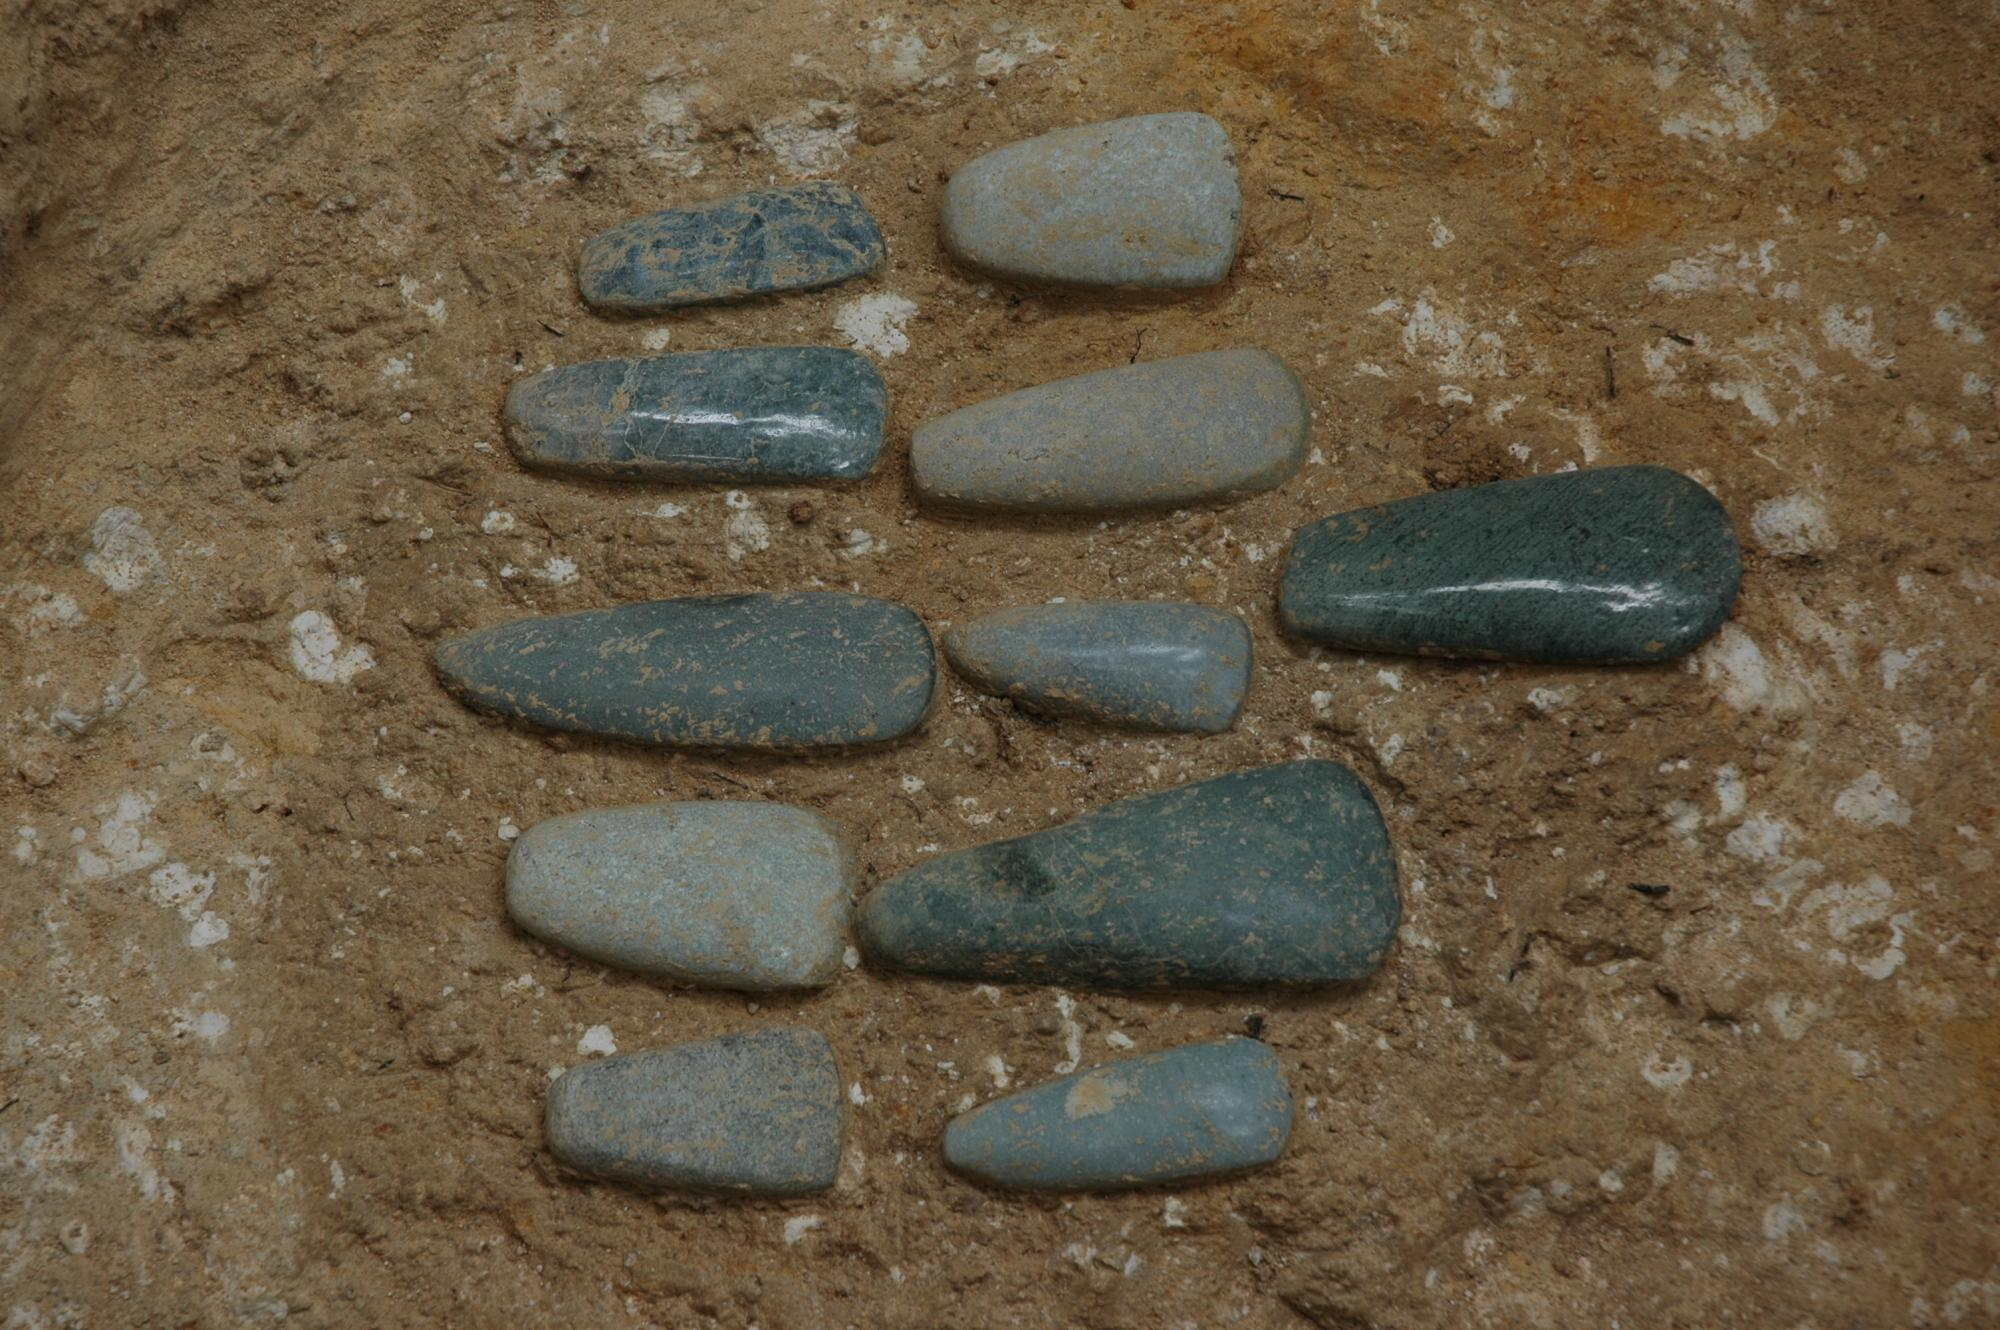 A jade axe offering found along the central axis of the solar temple complex of Ceibal